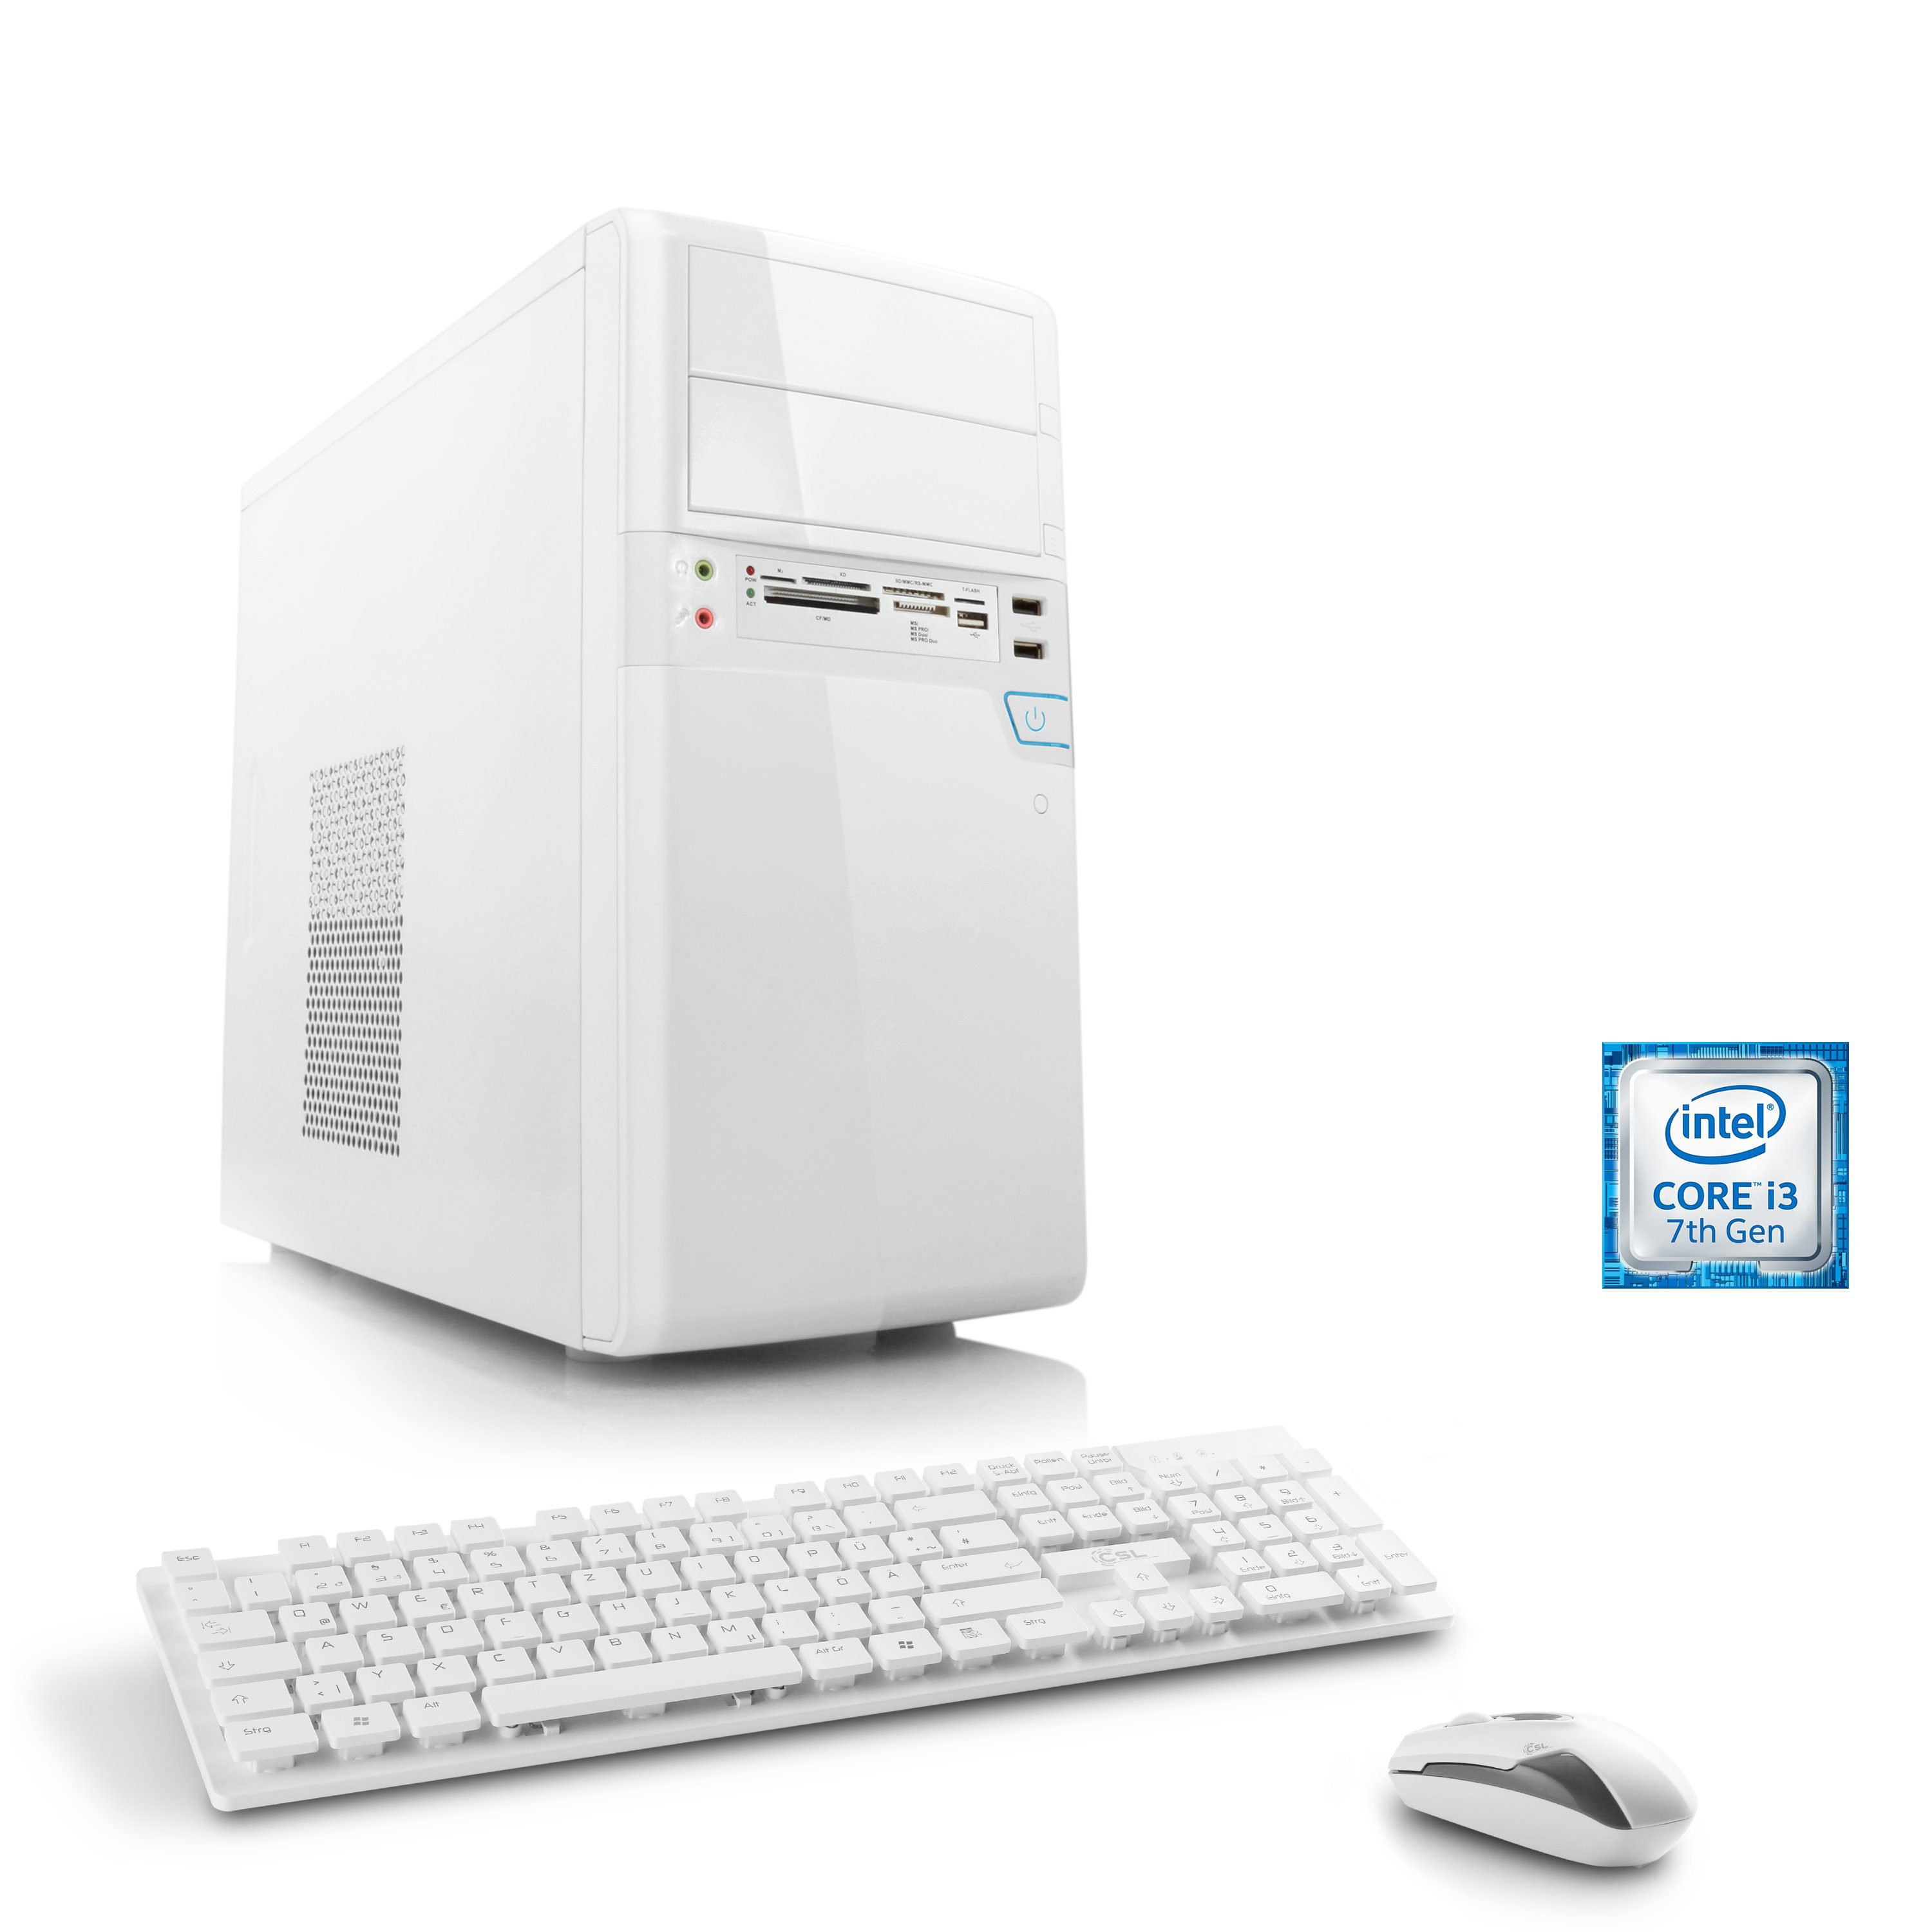 CSL Multimedia PC | Core i3-7100 | Intel HD 630 | 8 GB DDR4 »Speed T5951 Windows 10 Home«